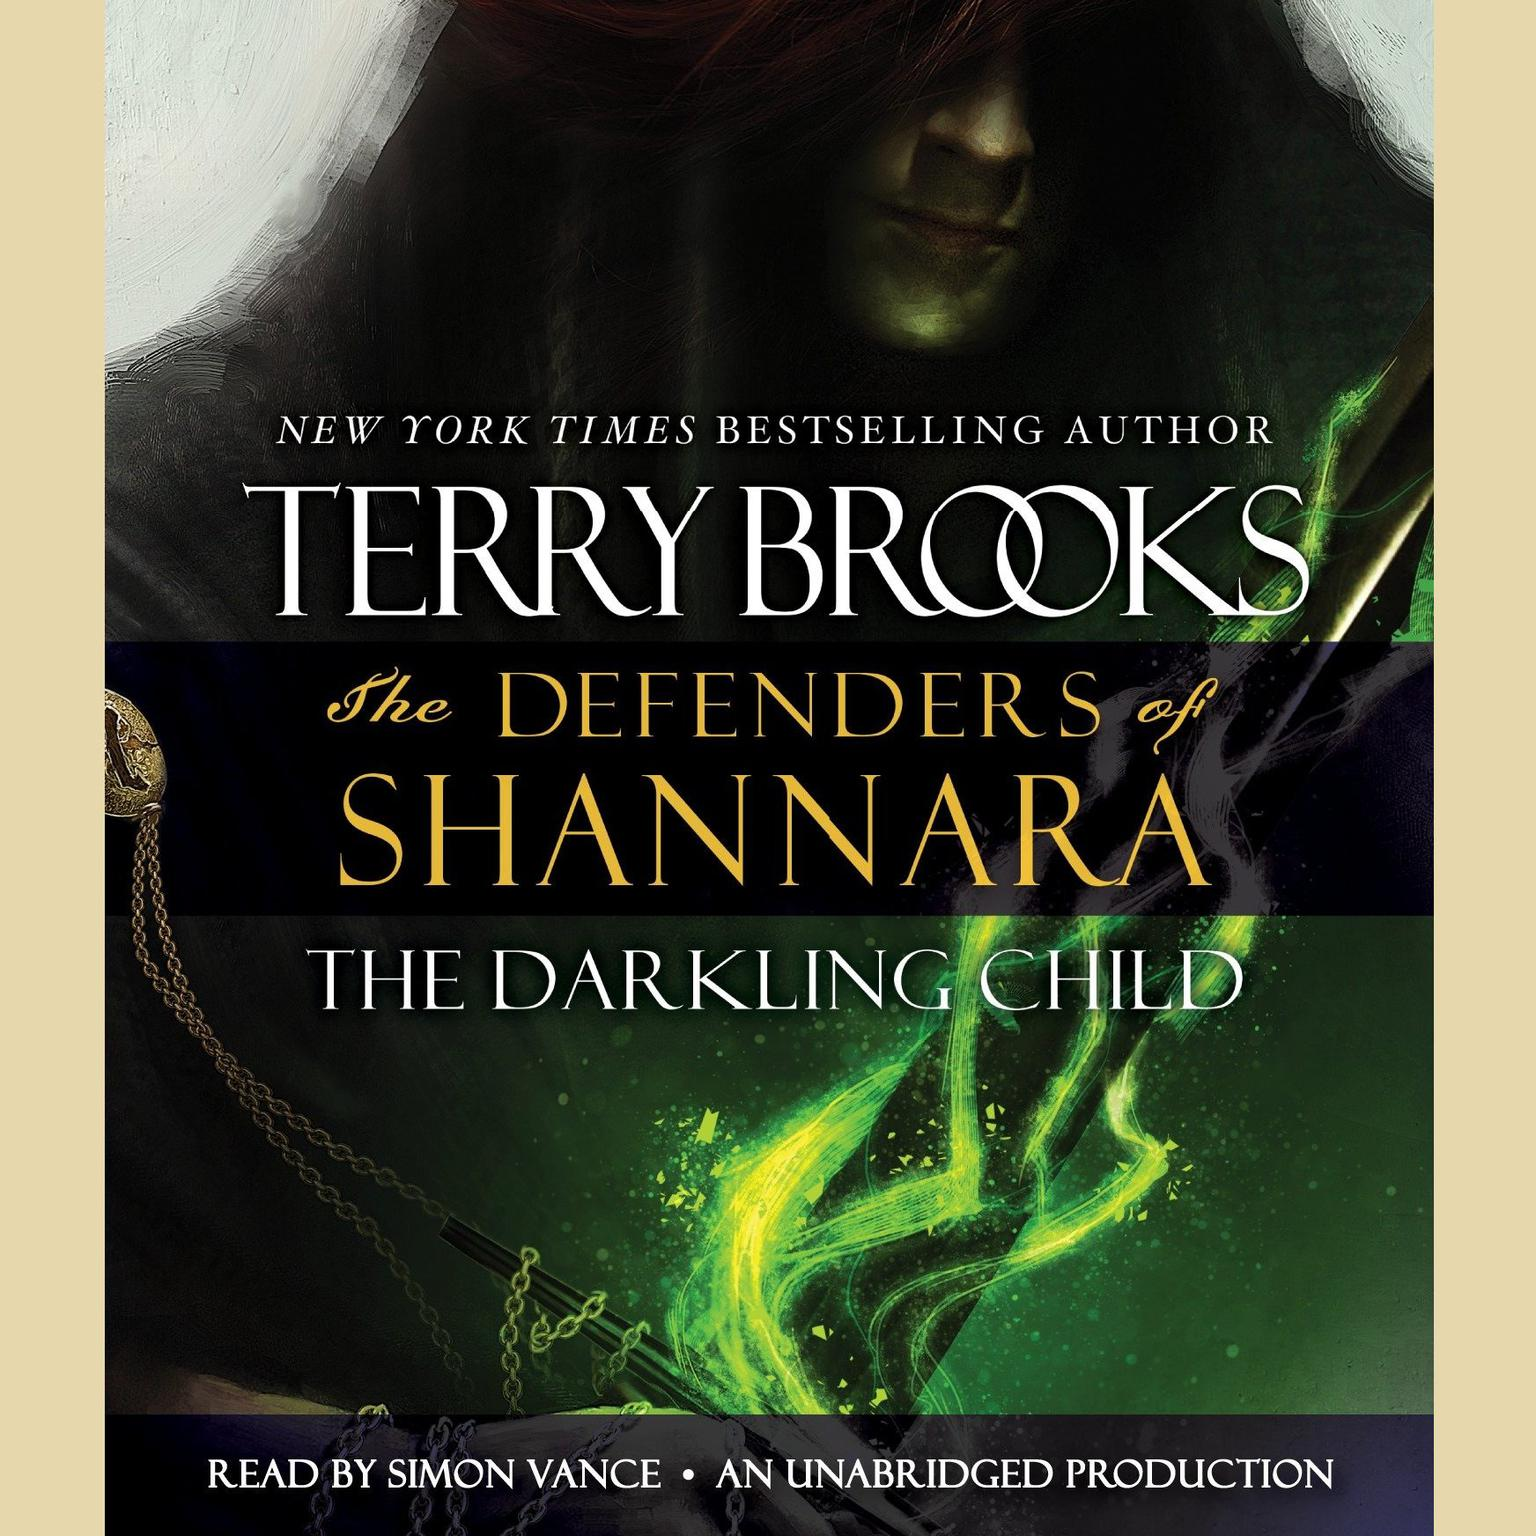 Printable The Darkling Child: The Defenders of Shannara Audiobook Cover Art